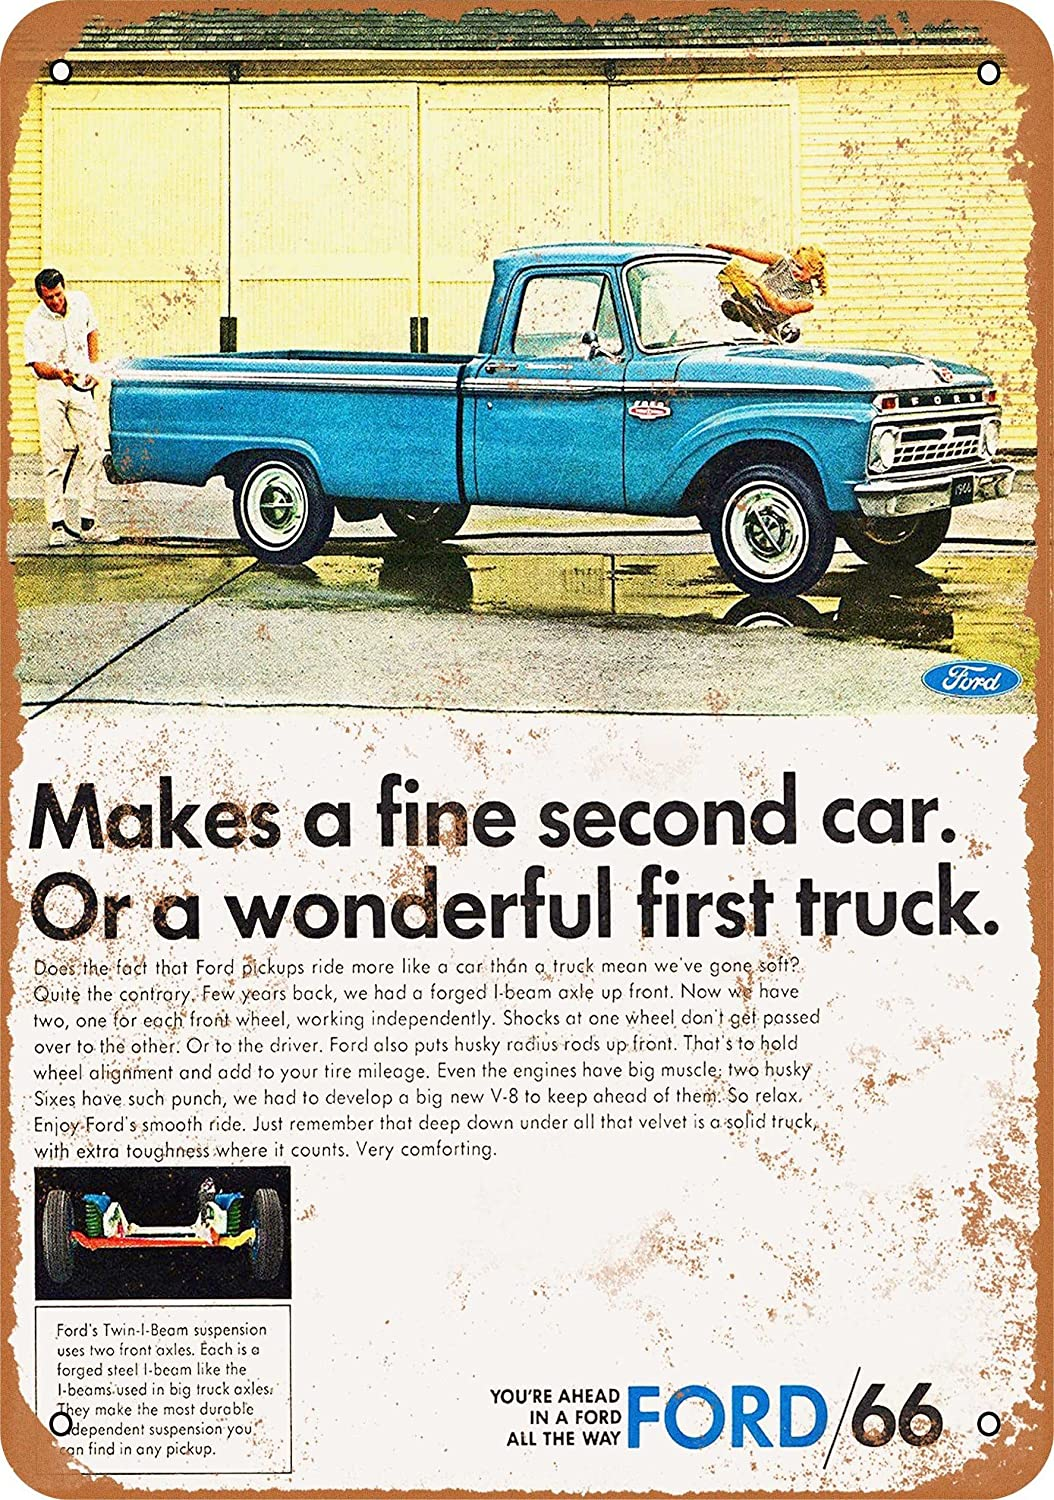 Vintage Look 1966 Ford Pickup Trucks Wall-Color 9 x 12 Metal Sign